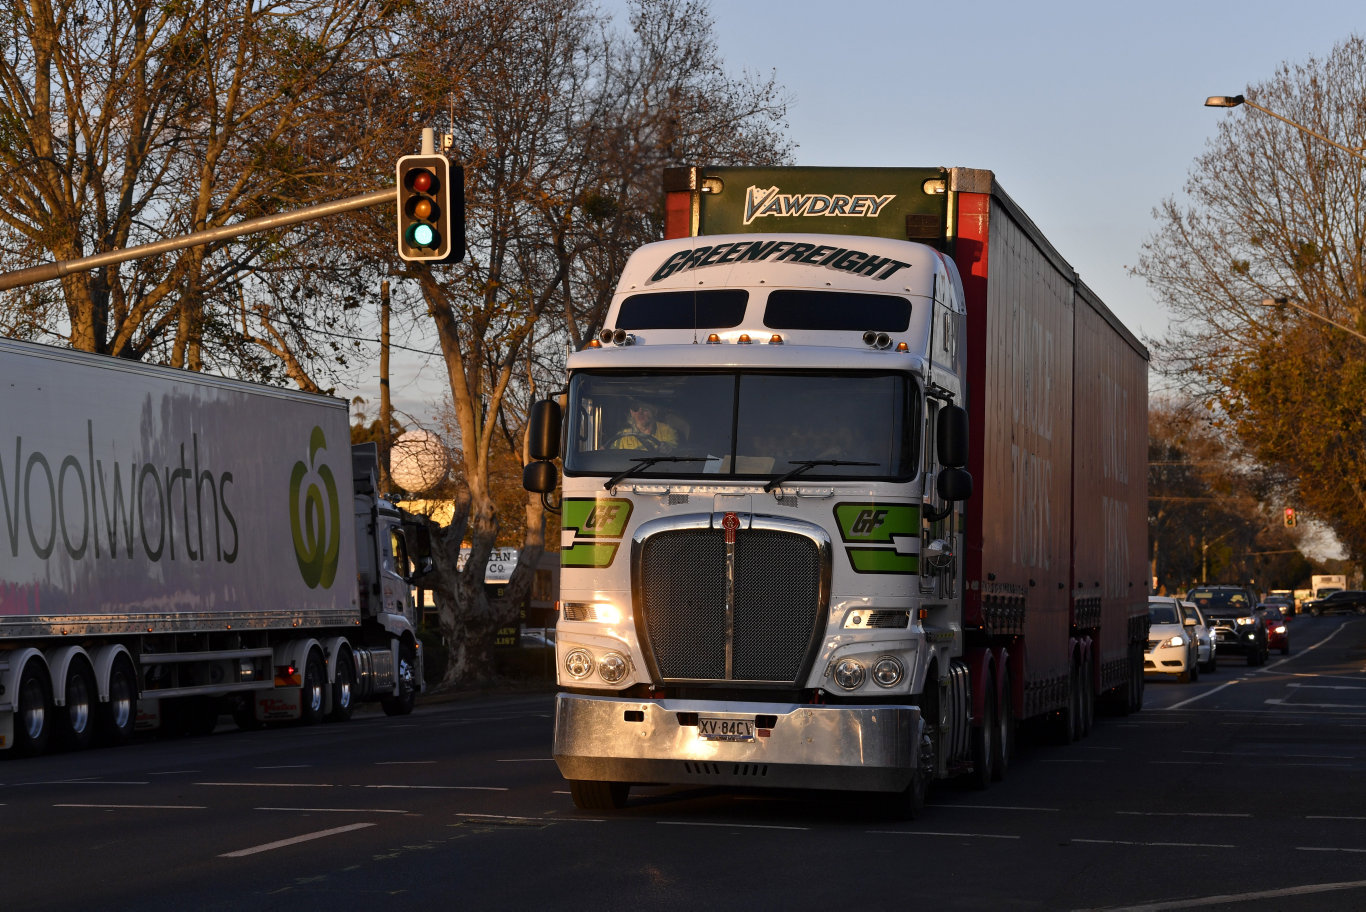 Trucks on James St in the weeks before the opening of the Toowoomba Second Range Crossing, to be known as the Toowoomba Bypass, Friday, August 16, 2019.